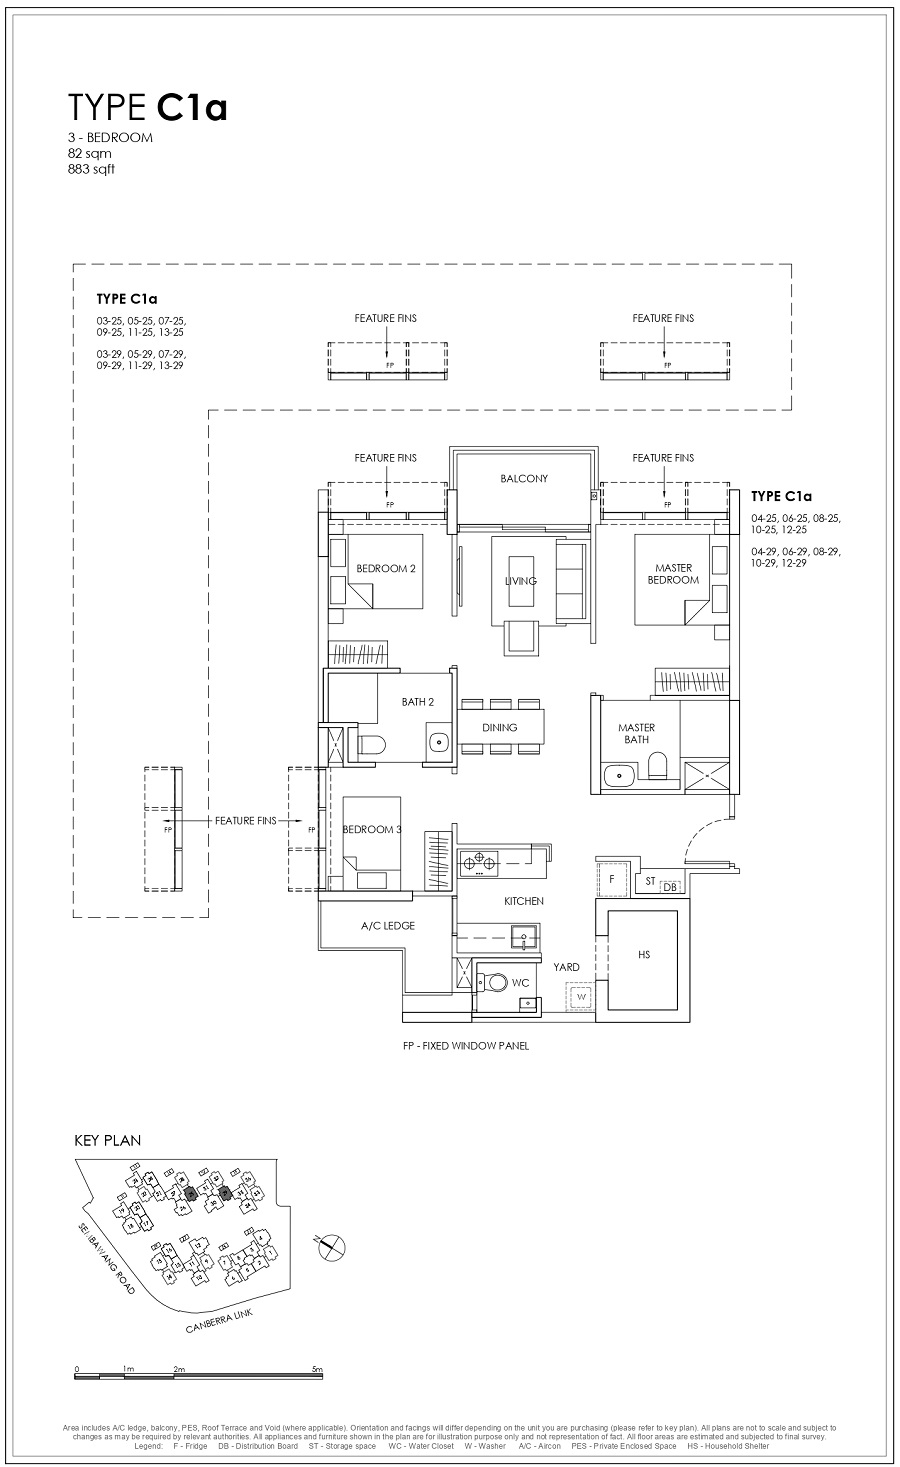 Provence Residence EC 3BR Type C1a 82_883